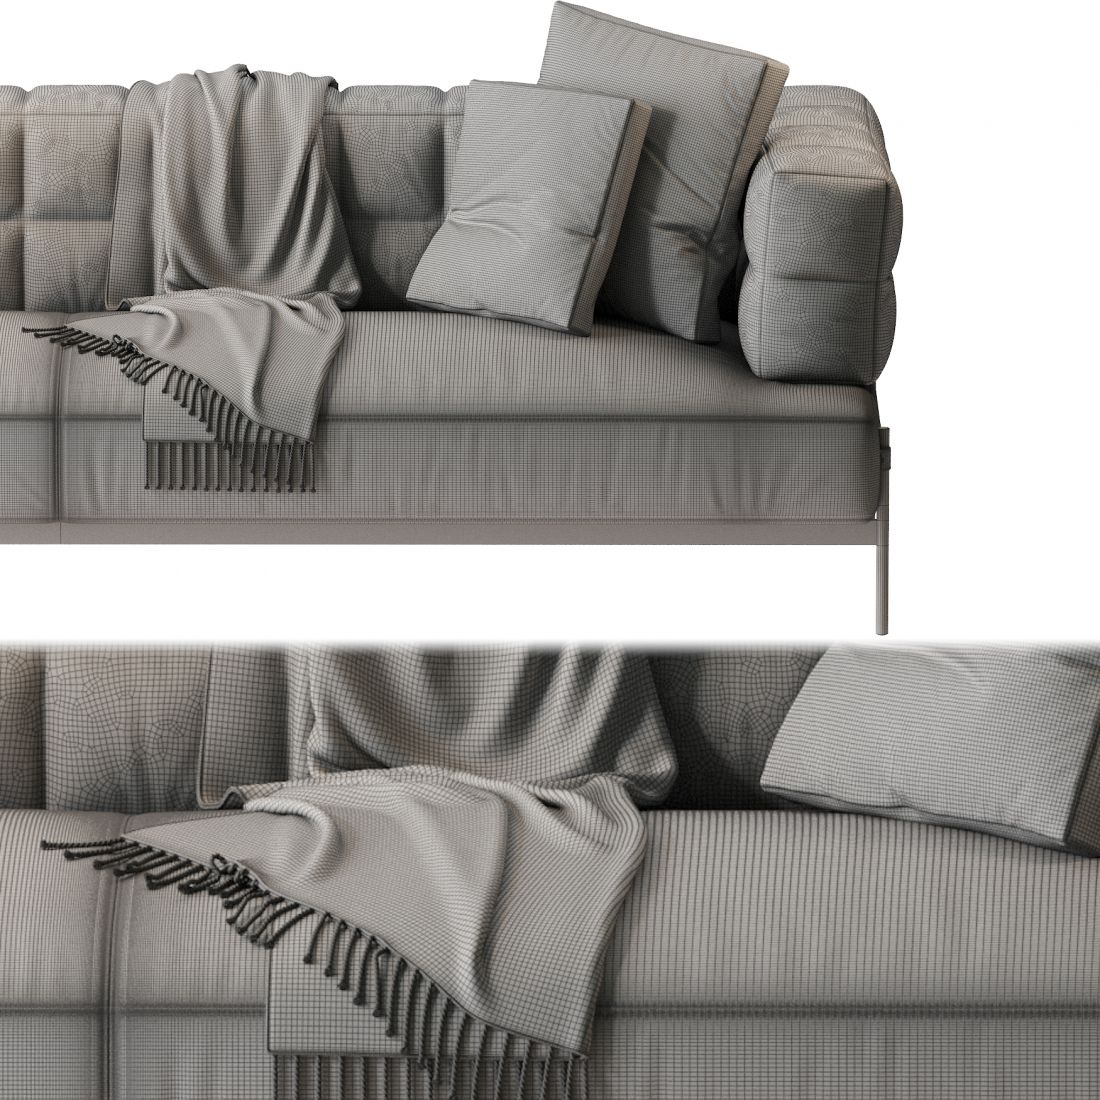 Aston Martin V220 Sofa 3d Model For Corona